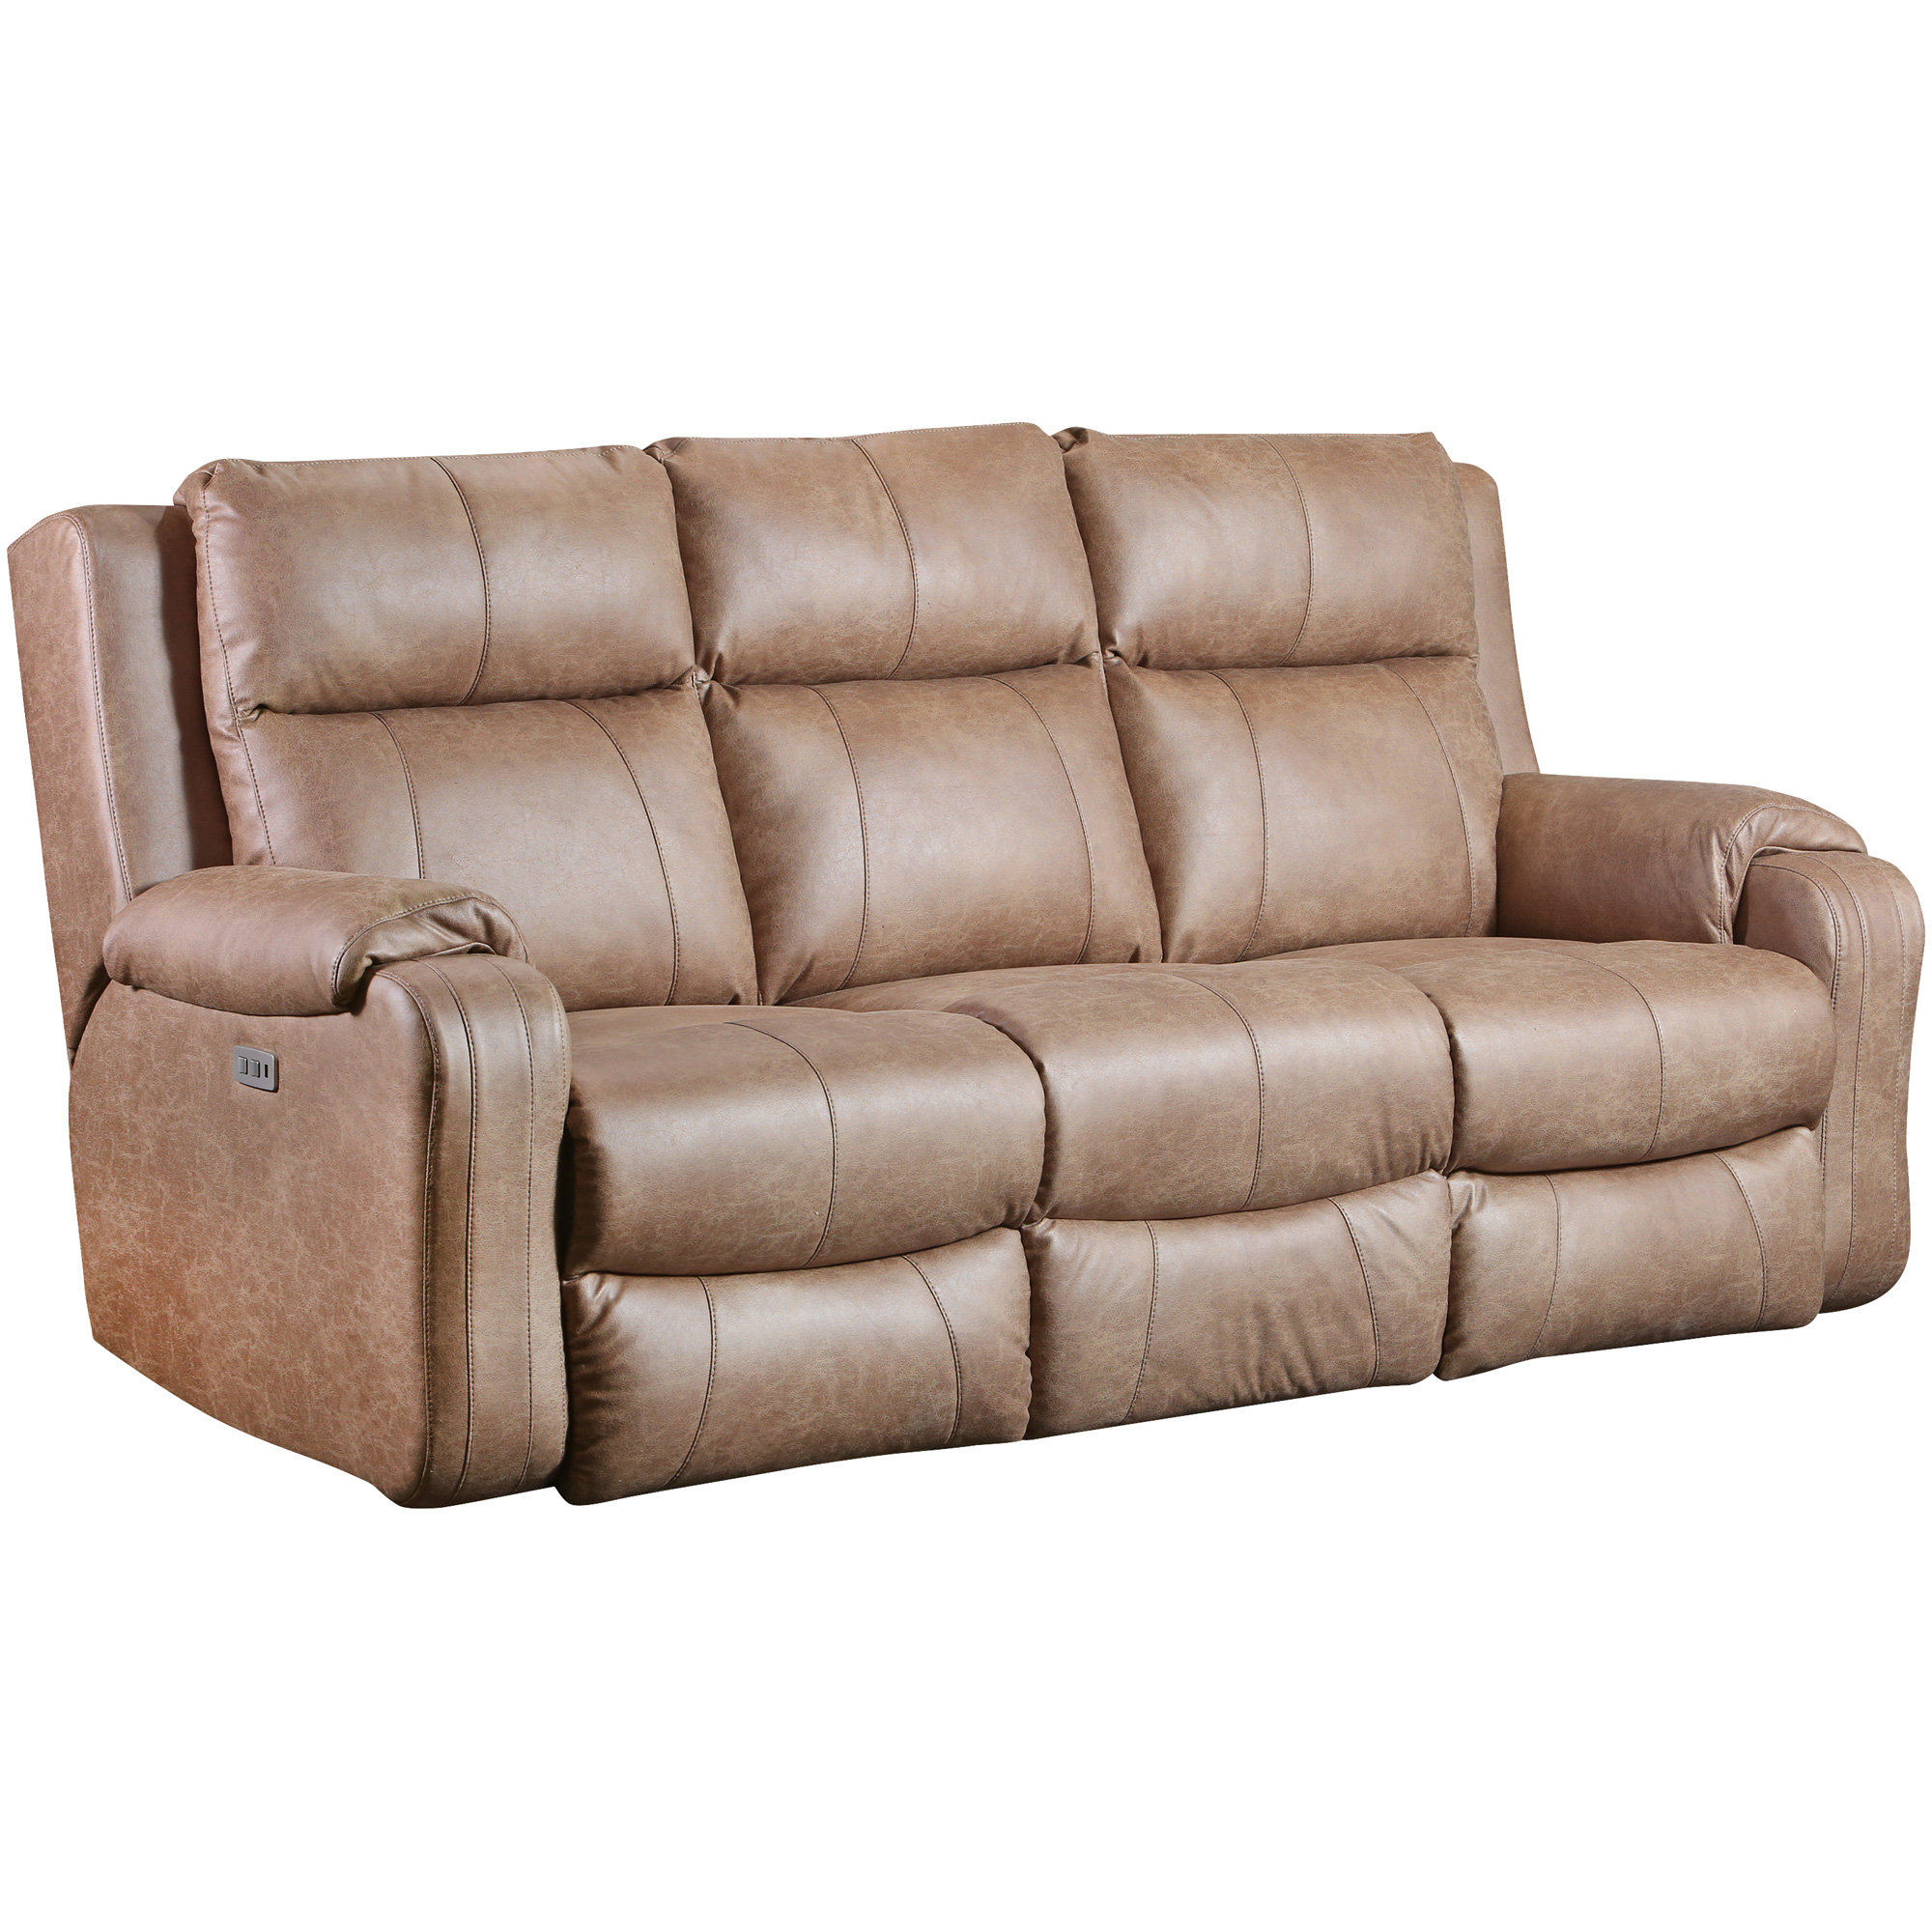 Southern Motion | Contour Vintage Power+ Reclining Sofa